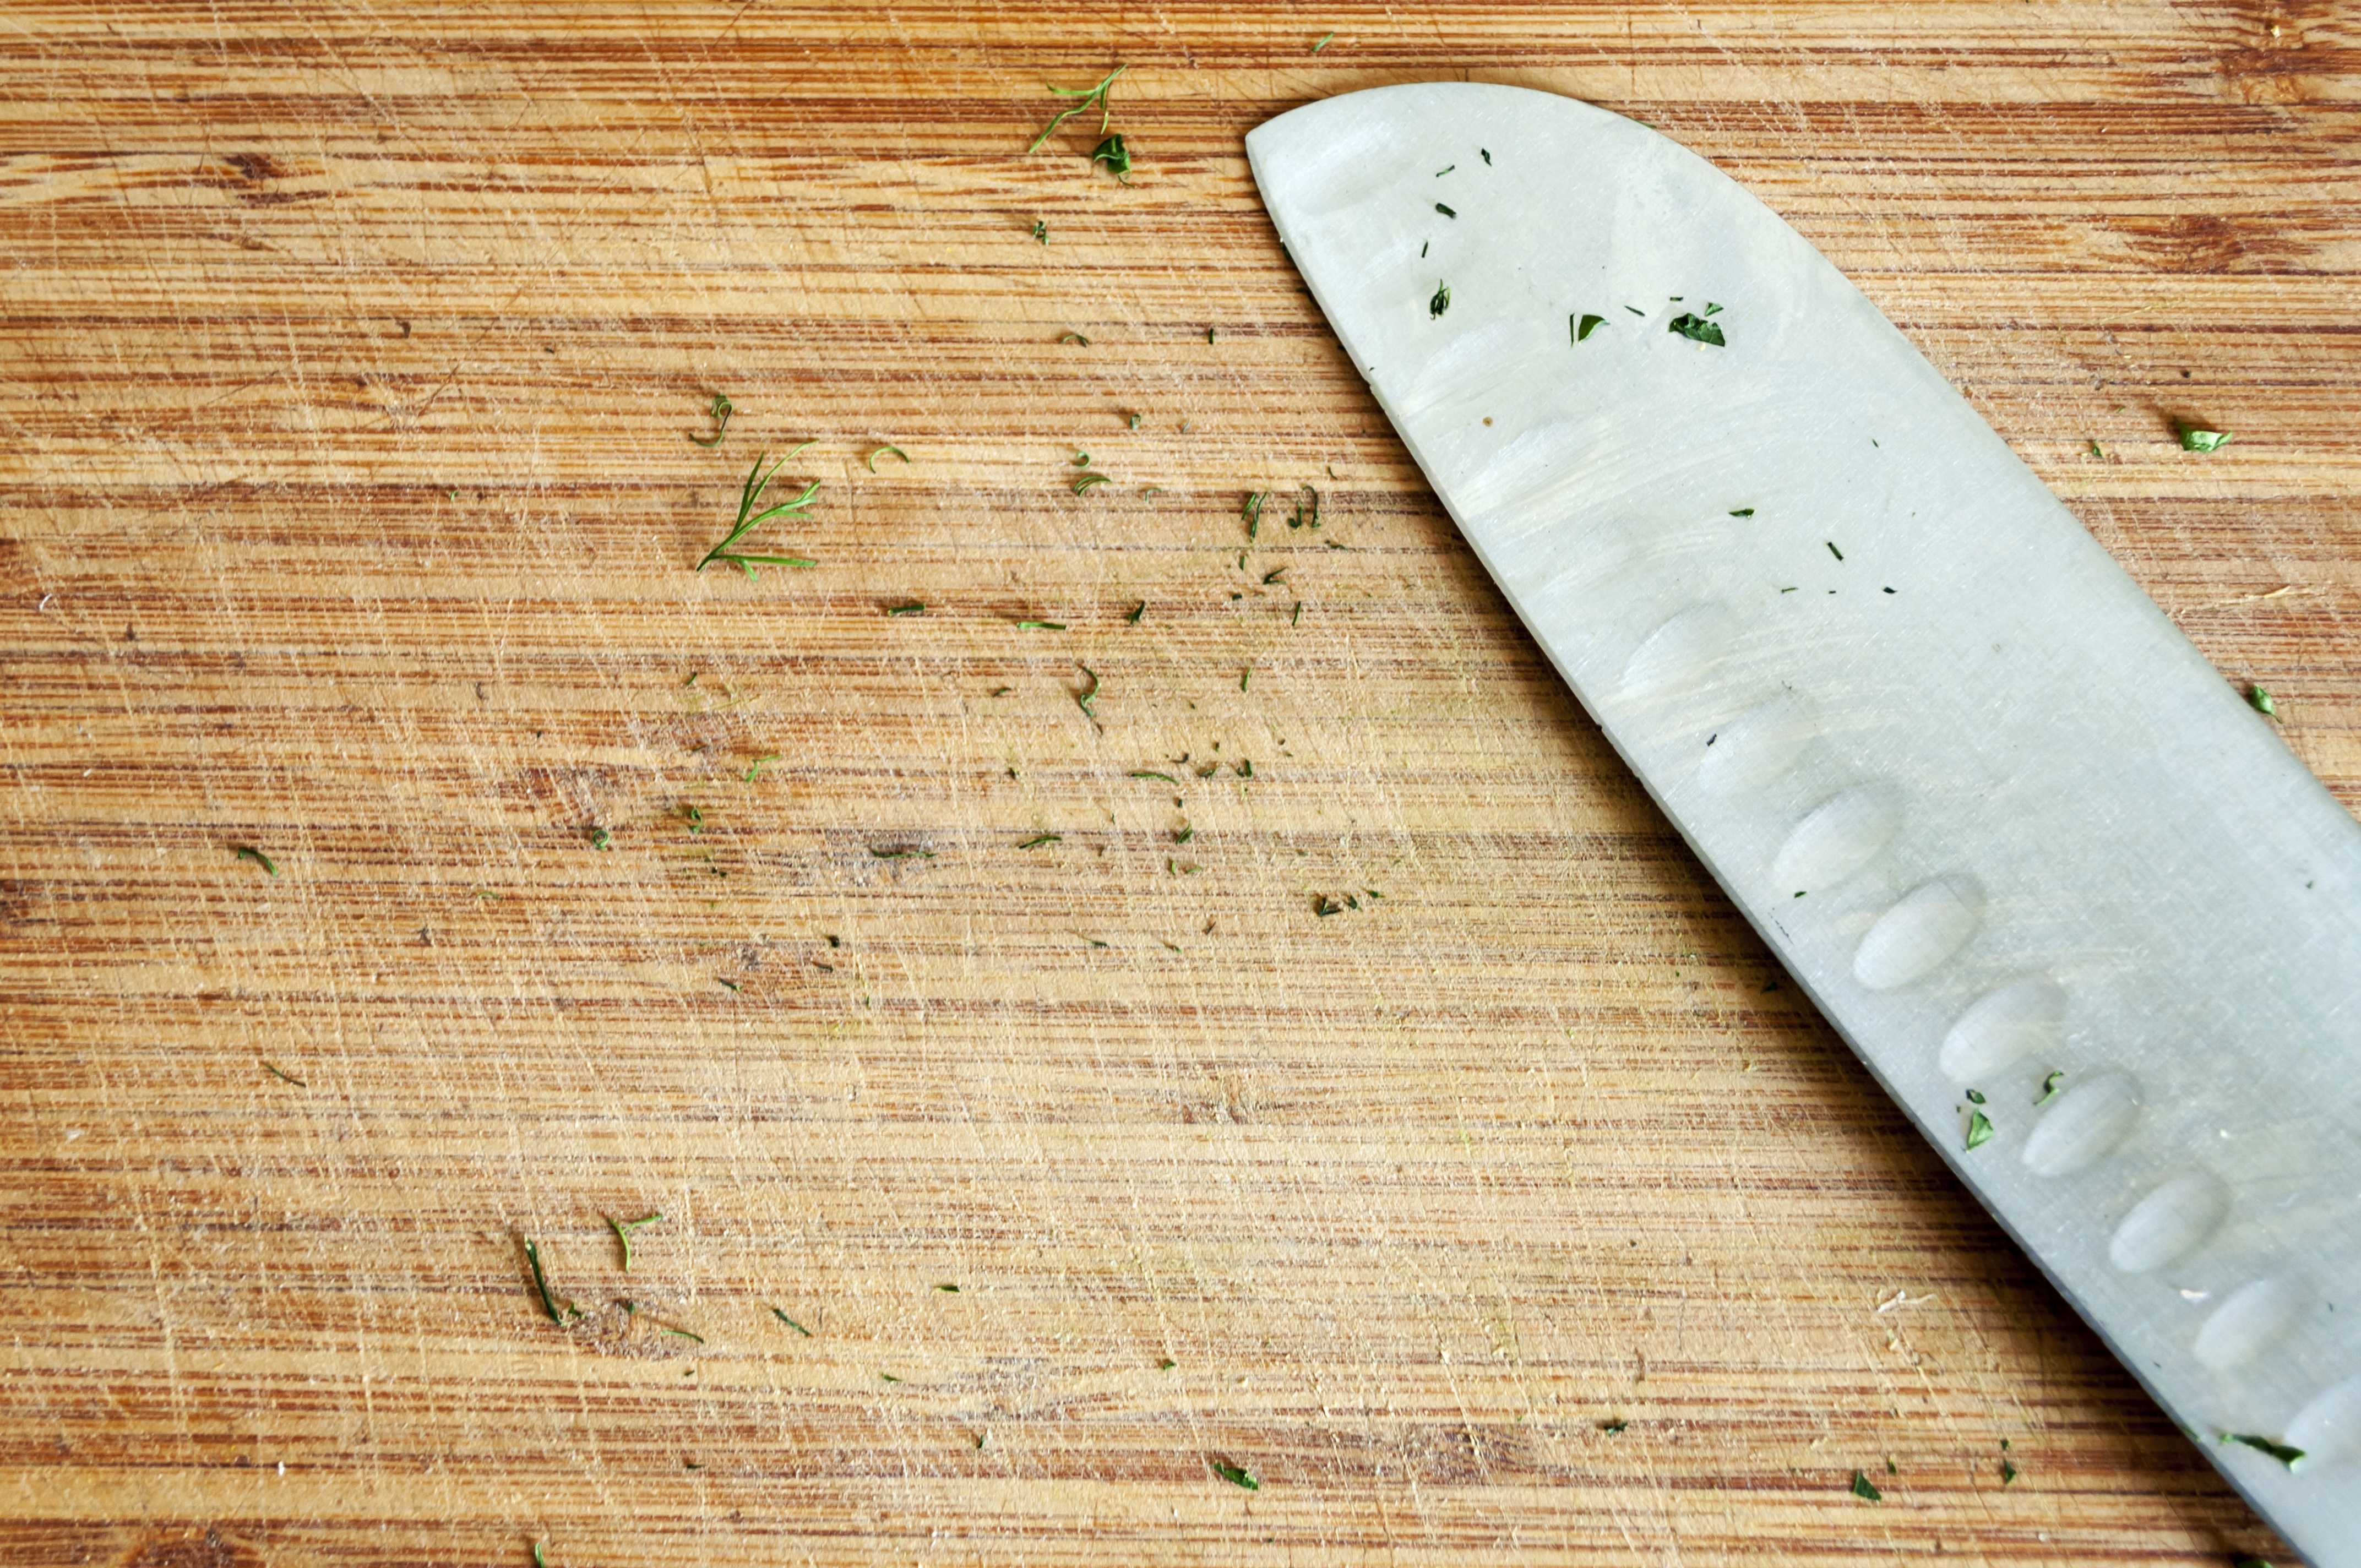 How to Get Mold Out of a Butcher Block | Home Guides | SF Gate